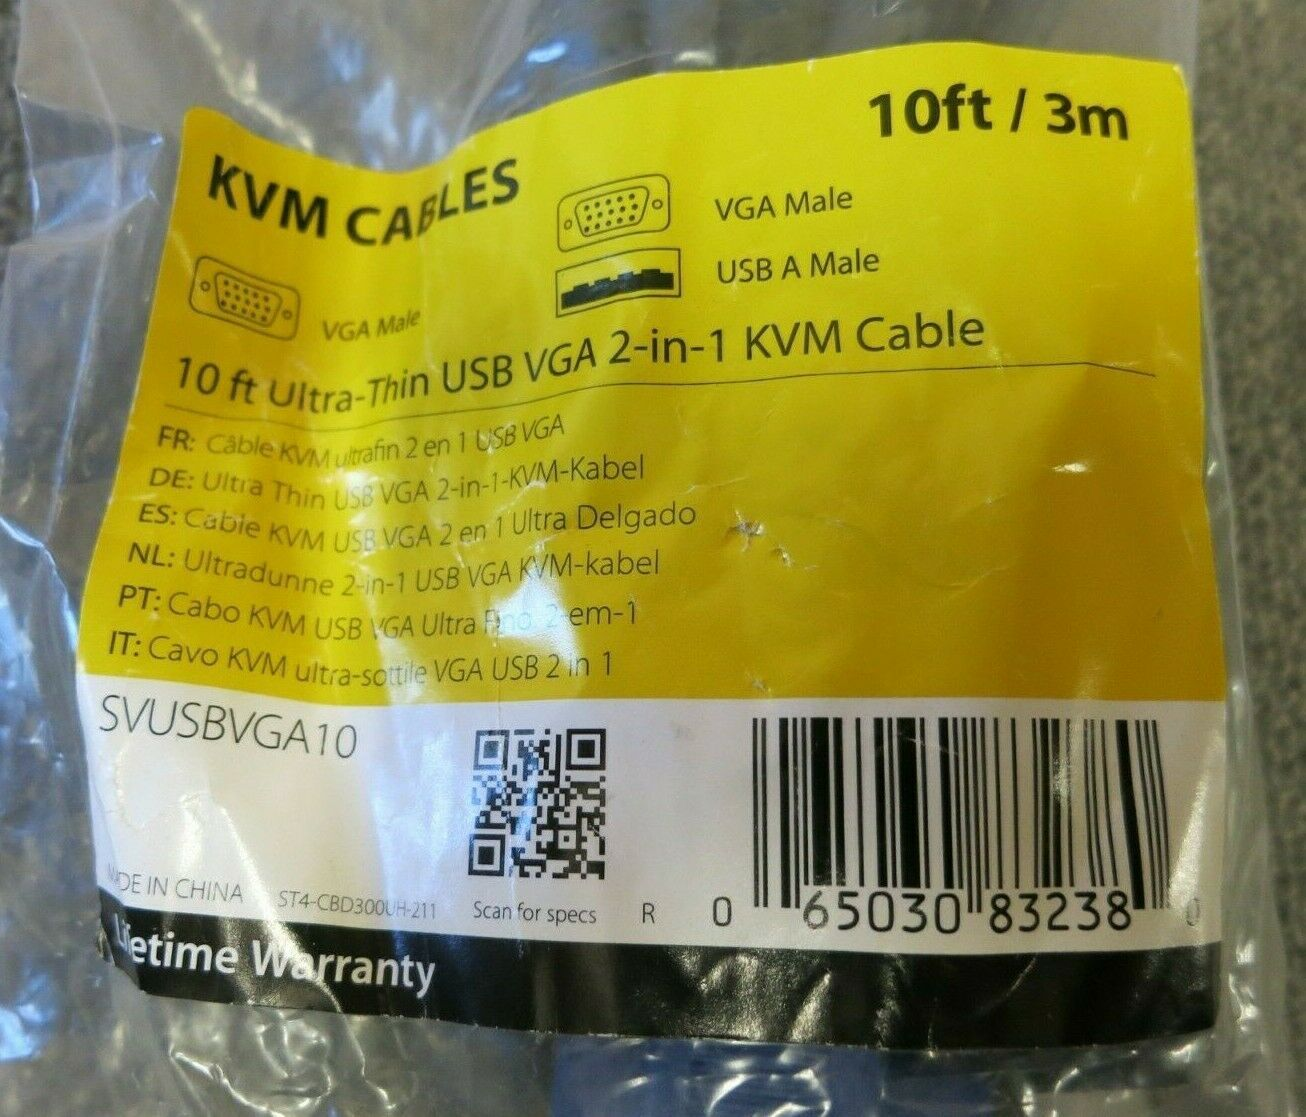 Ultra-Thin USB VGA 2-in-1 KVM Cable SVUSBVGA10 StarTech 10 ft